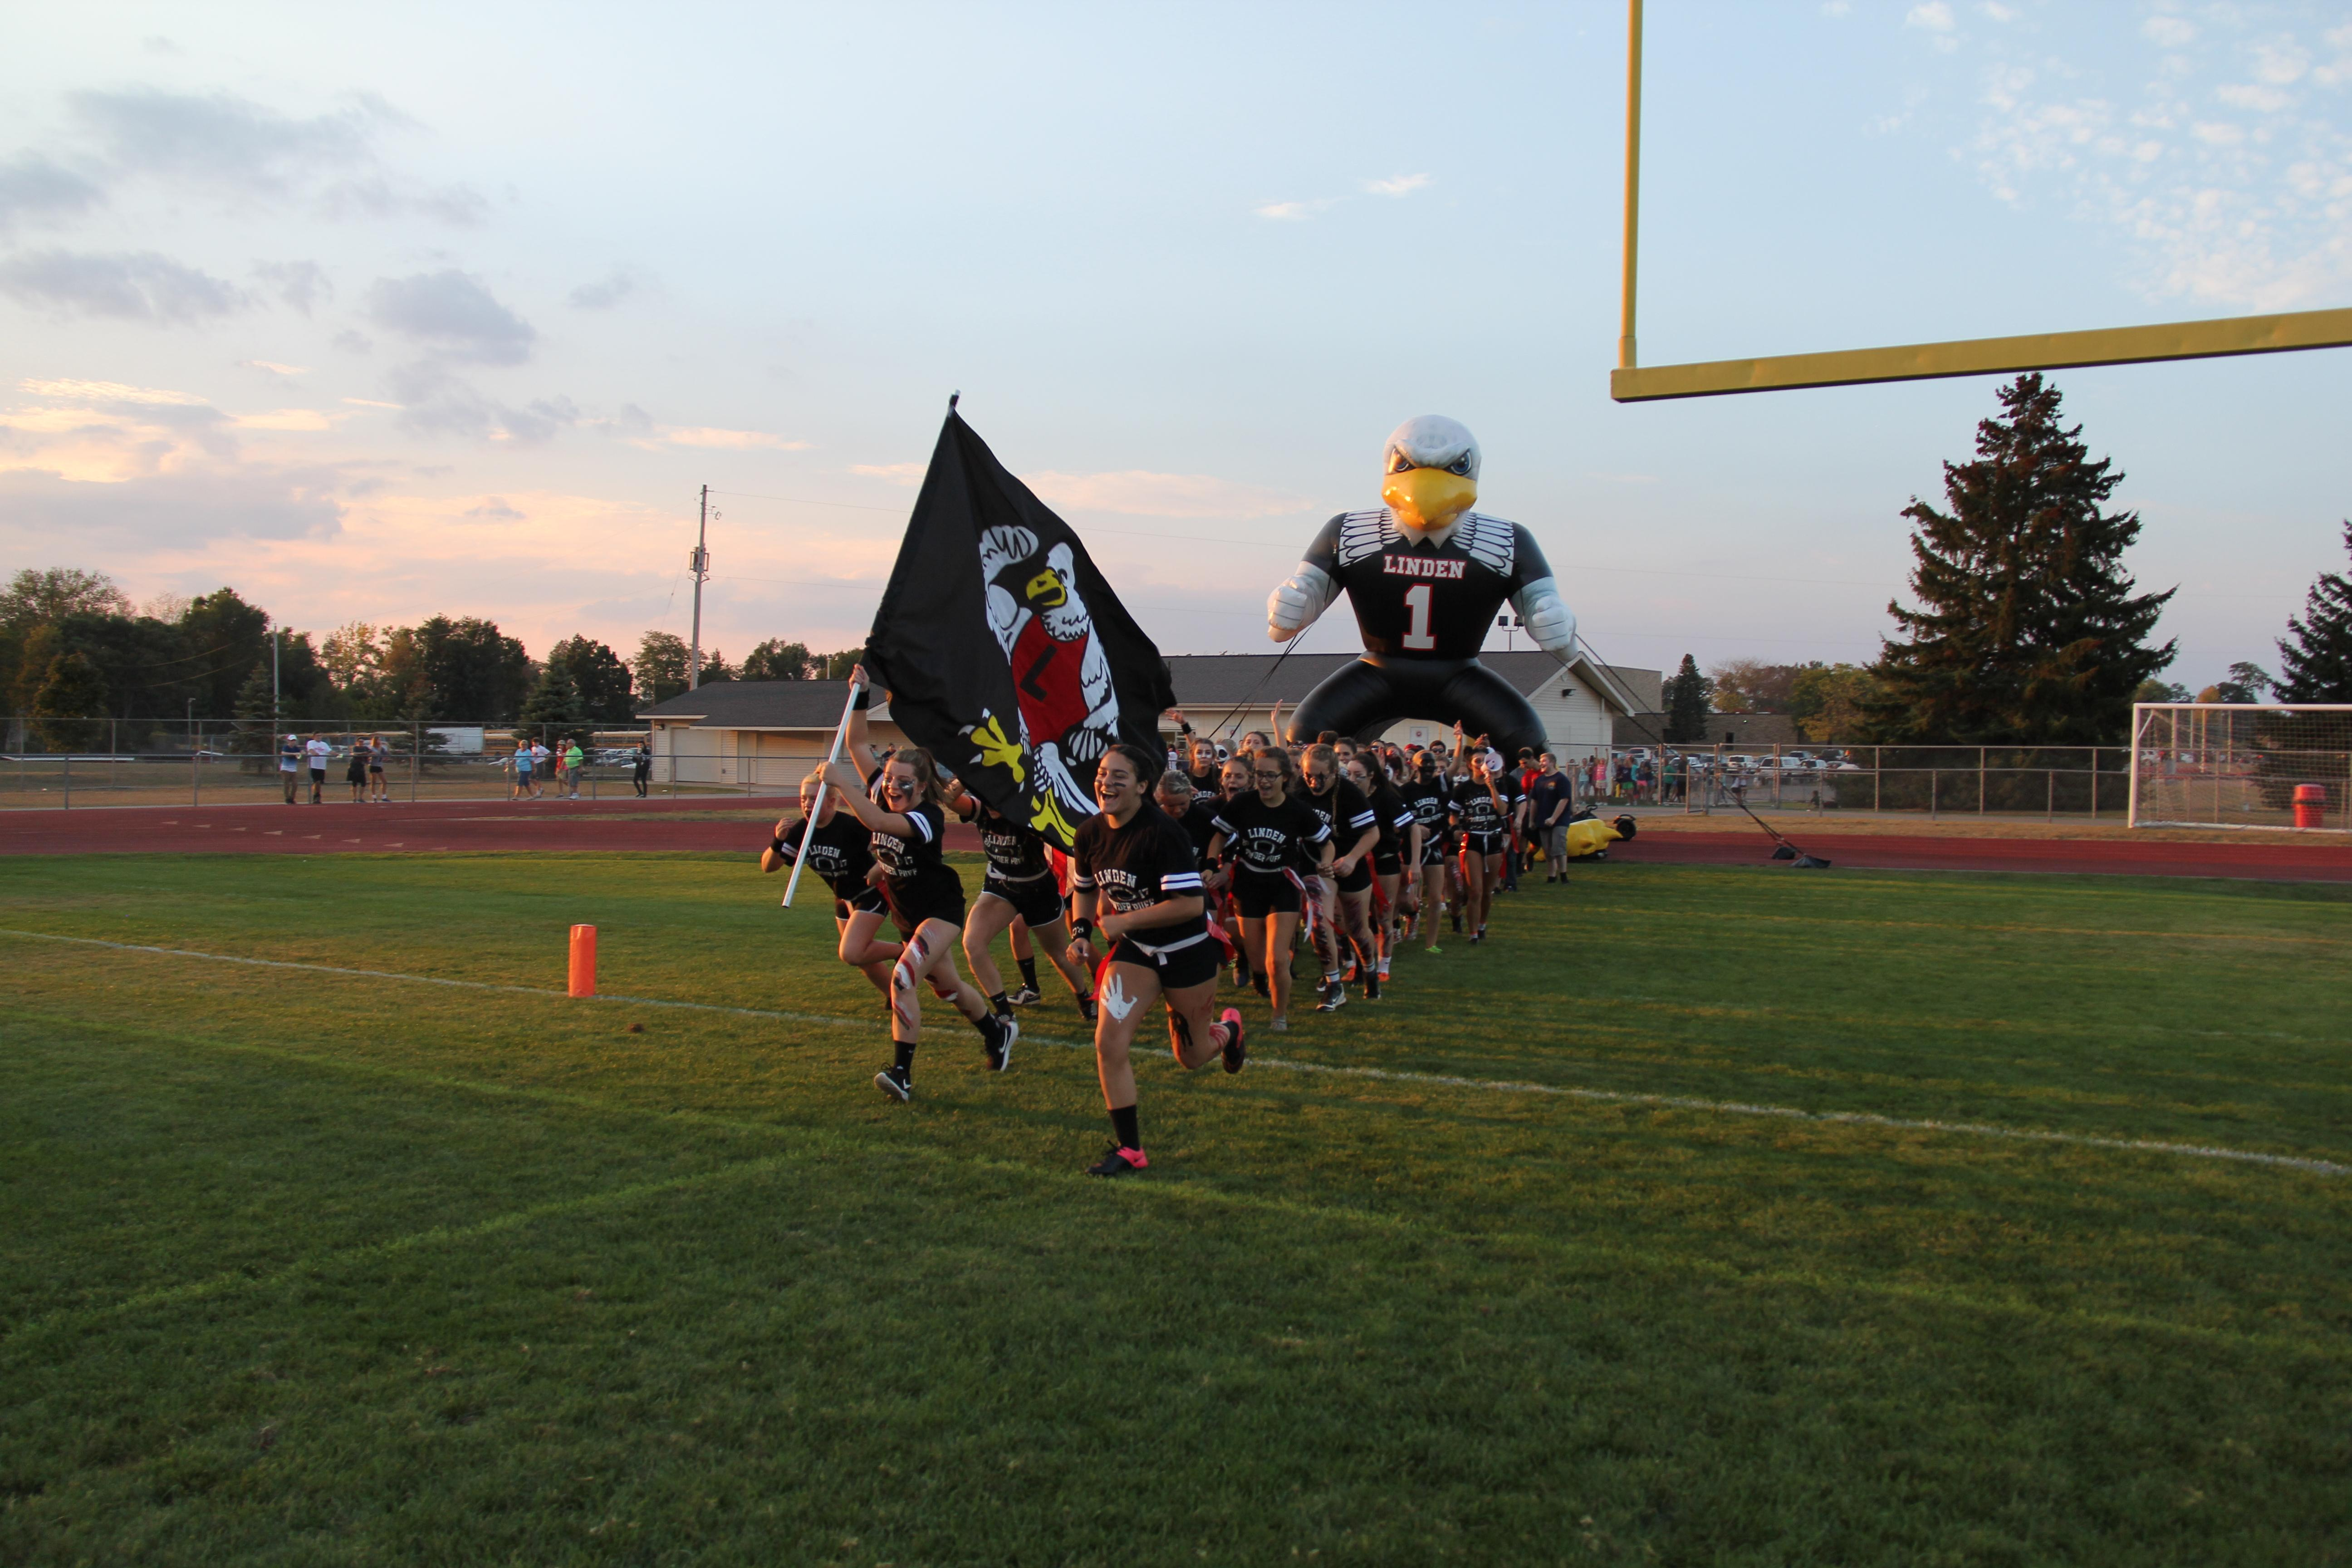 Powderpuff football players running through a blowup eagle tunnel